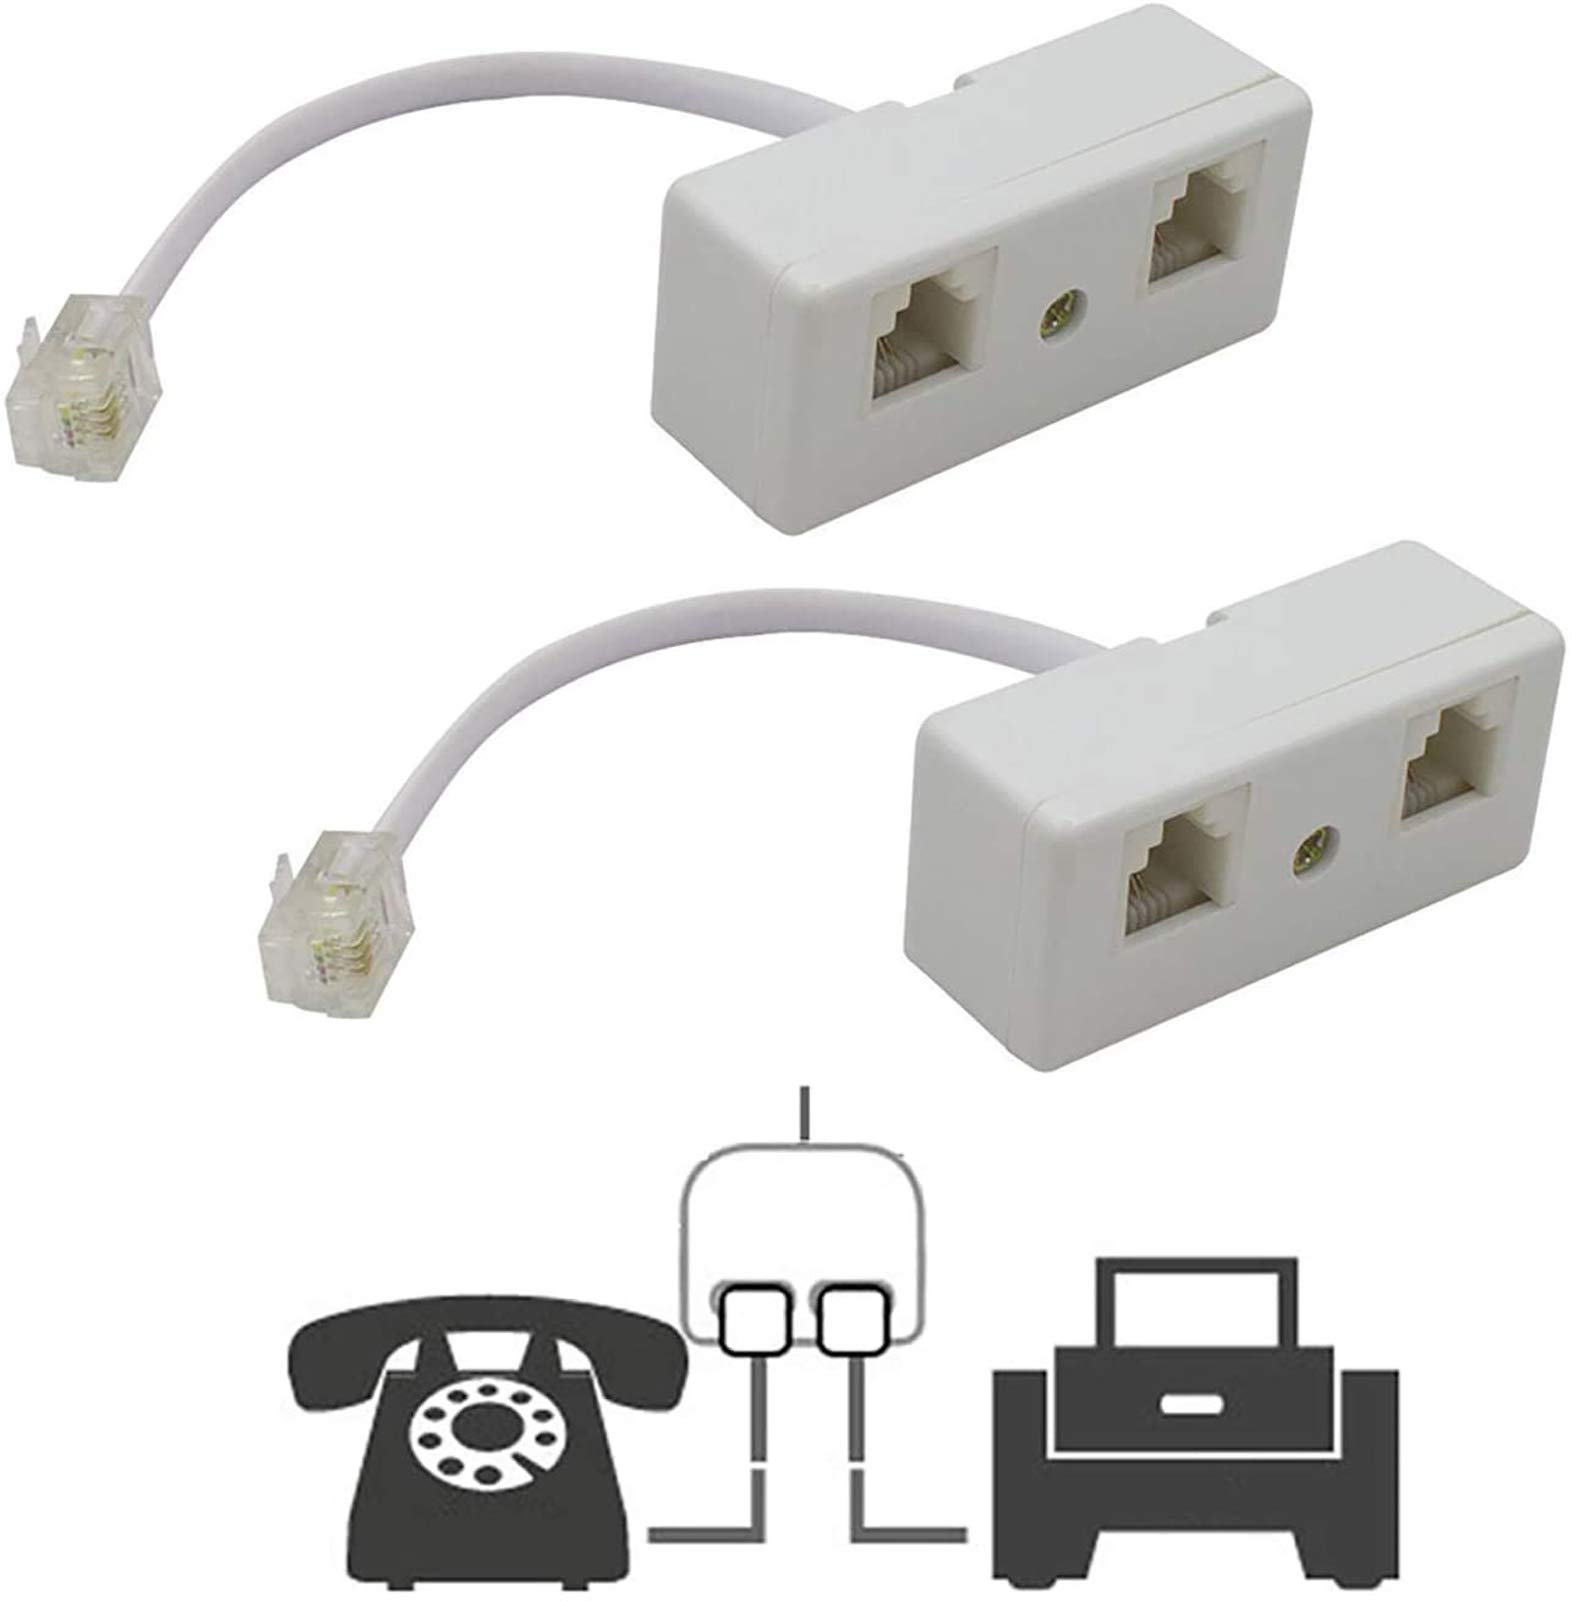 Two Way Telephone Splitters, Uvital Male to 2 Female Converter Cable RJ11 6P4C Telephone Wall Adaptor and Separator for Landline (White, 2 Pack)